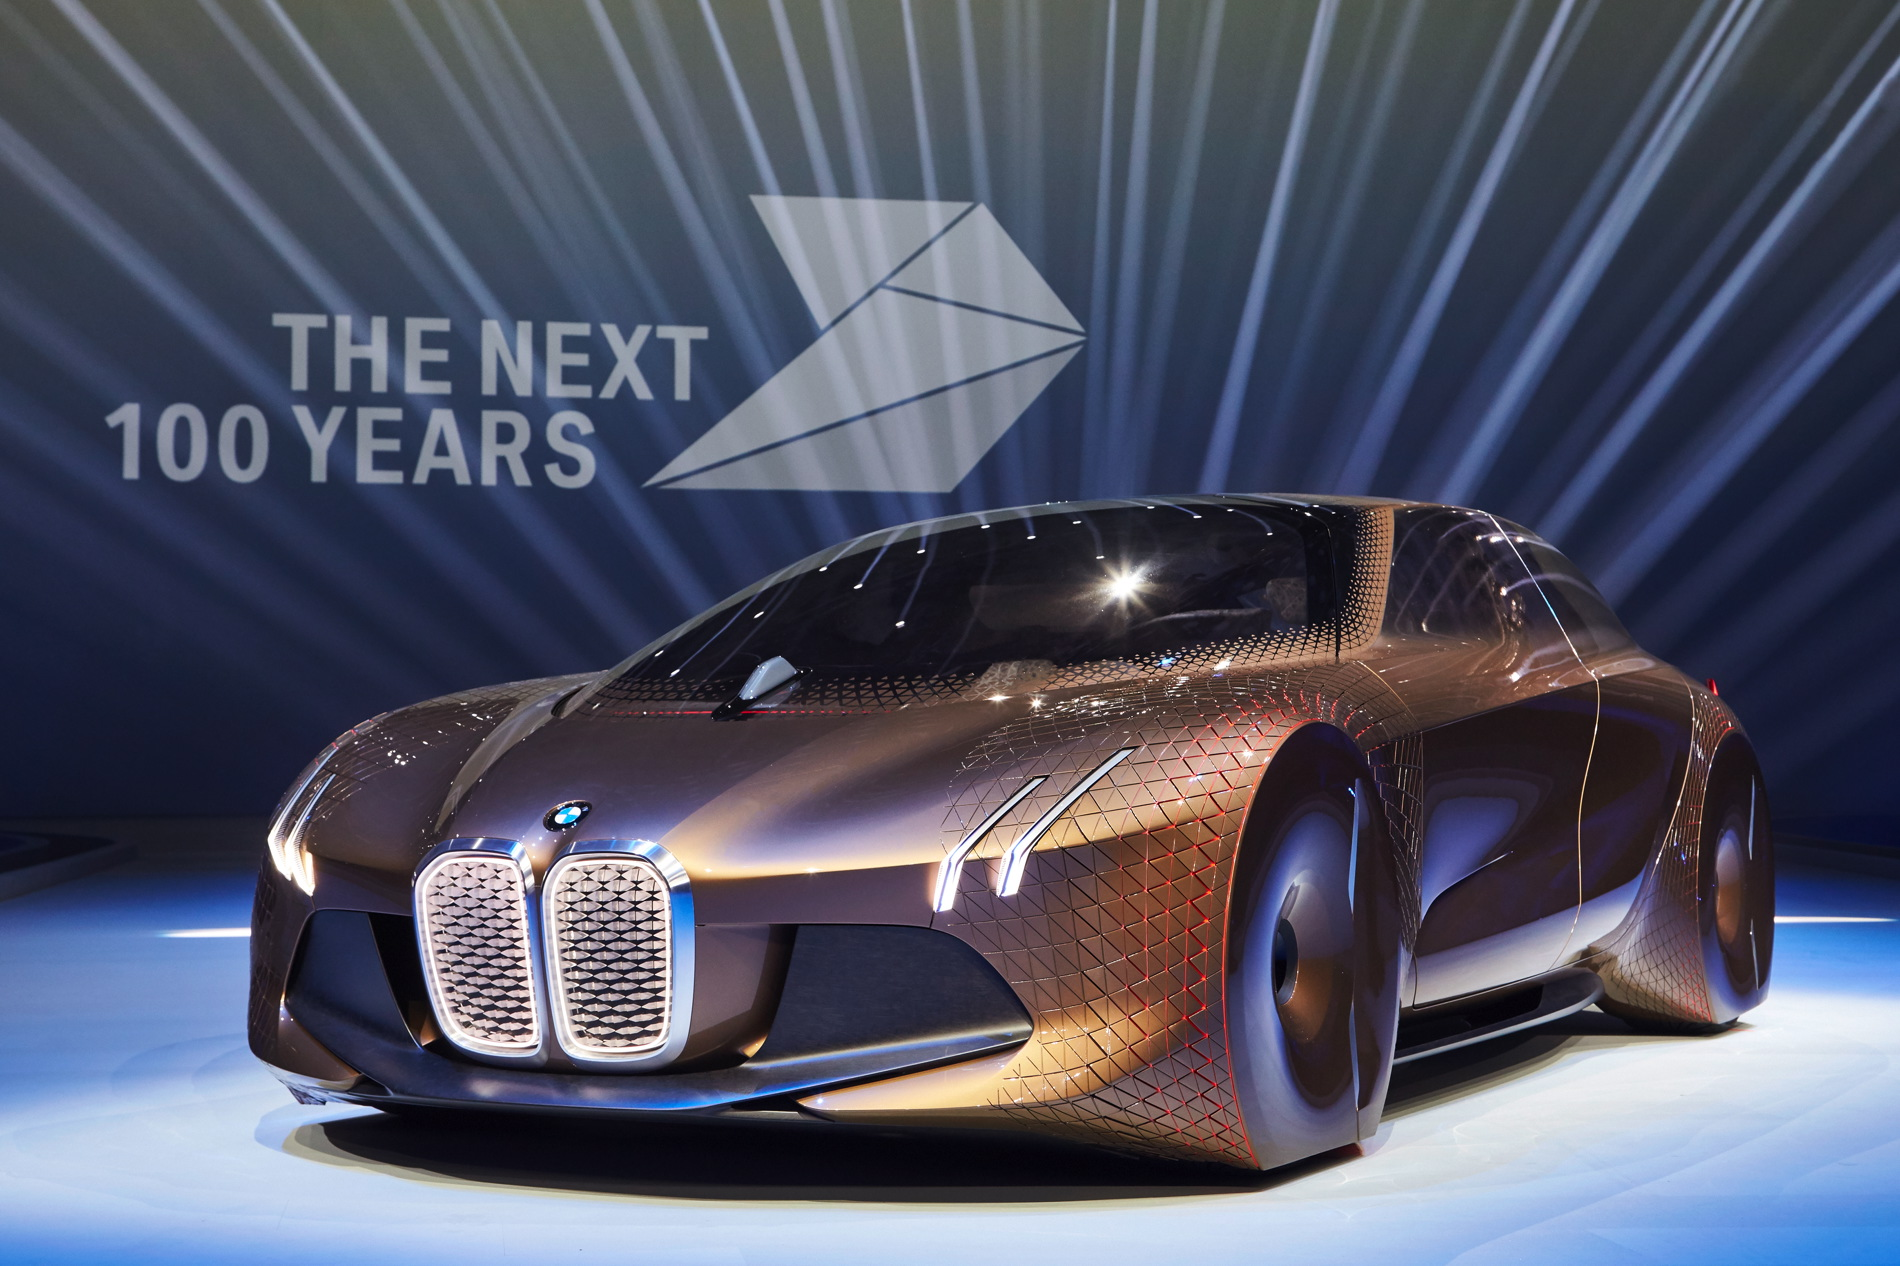 The ideas behind the BMW VISION NEXT 100 as explained by BMW designers